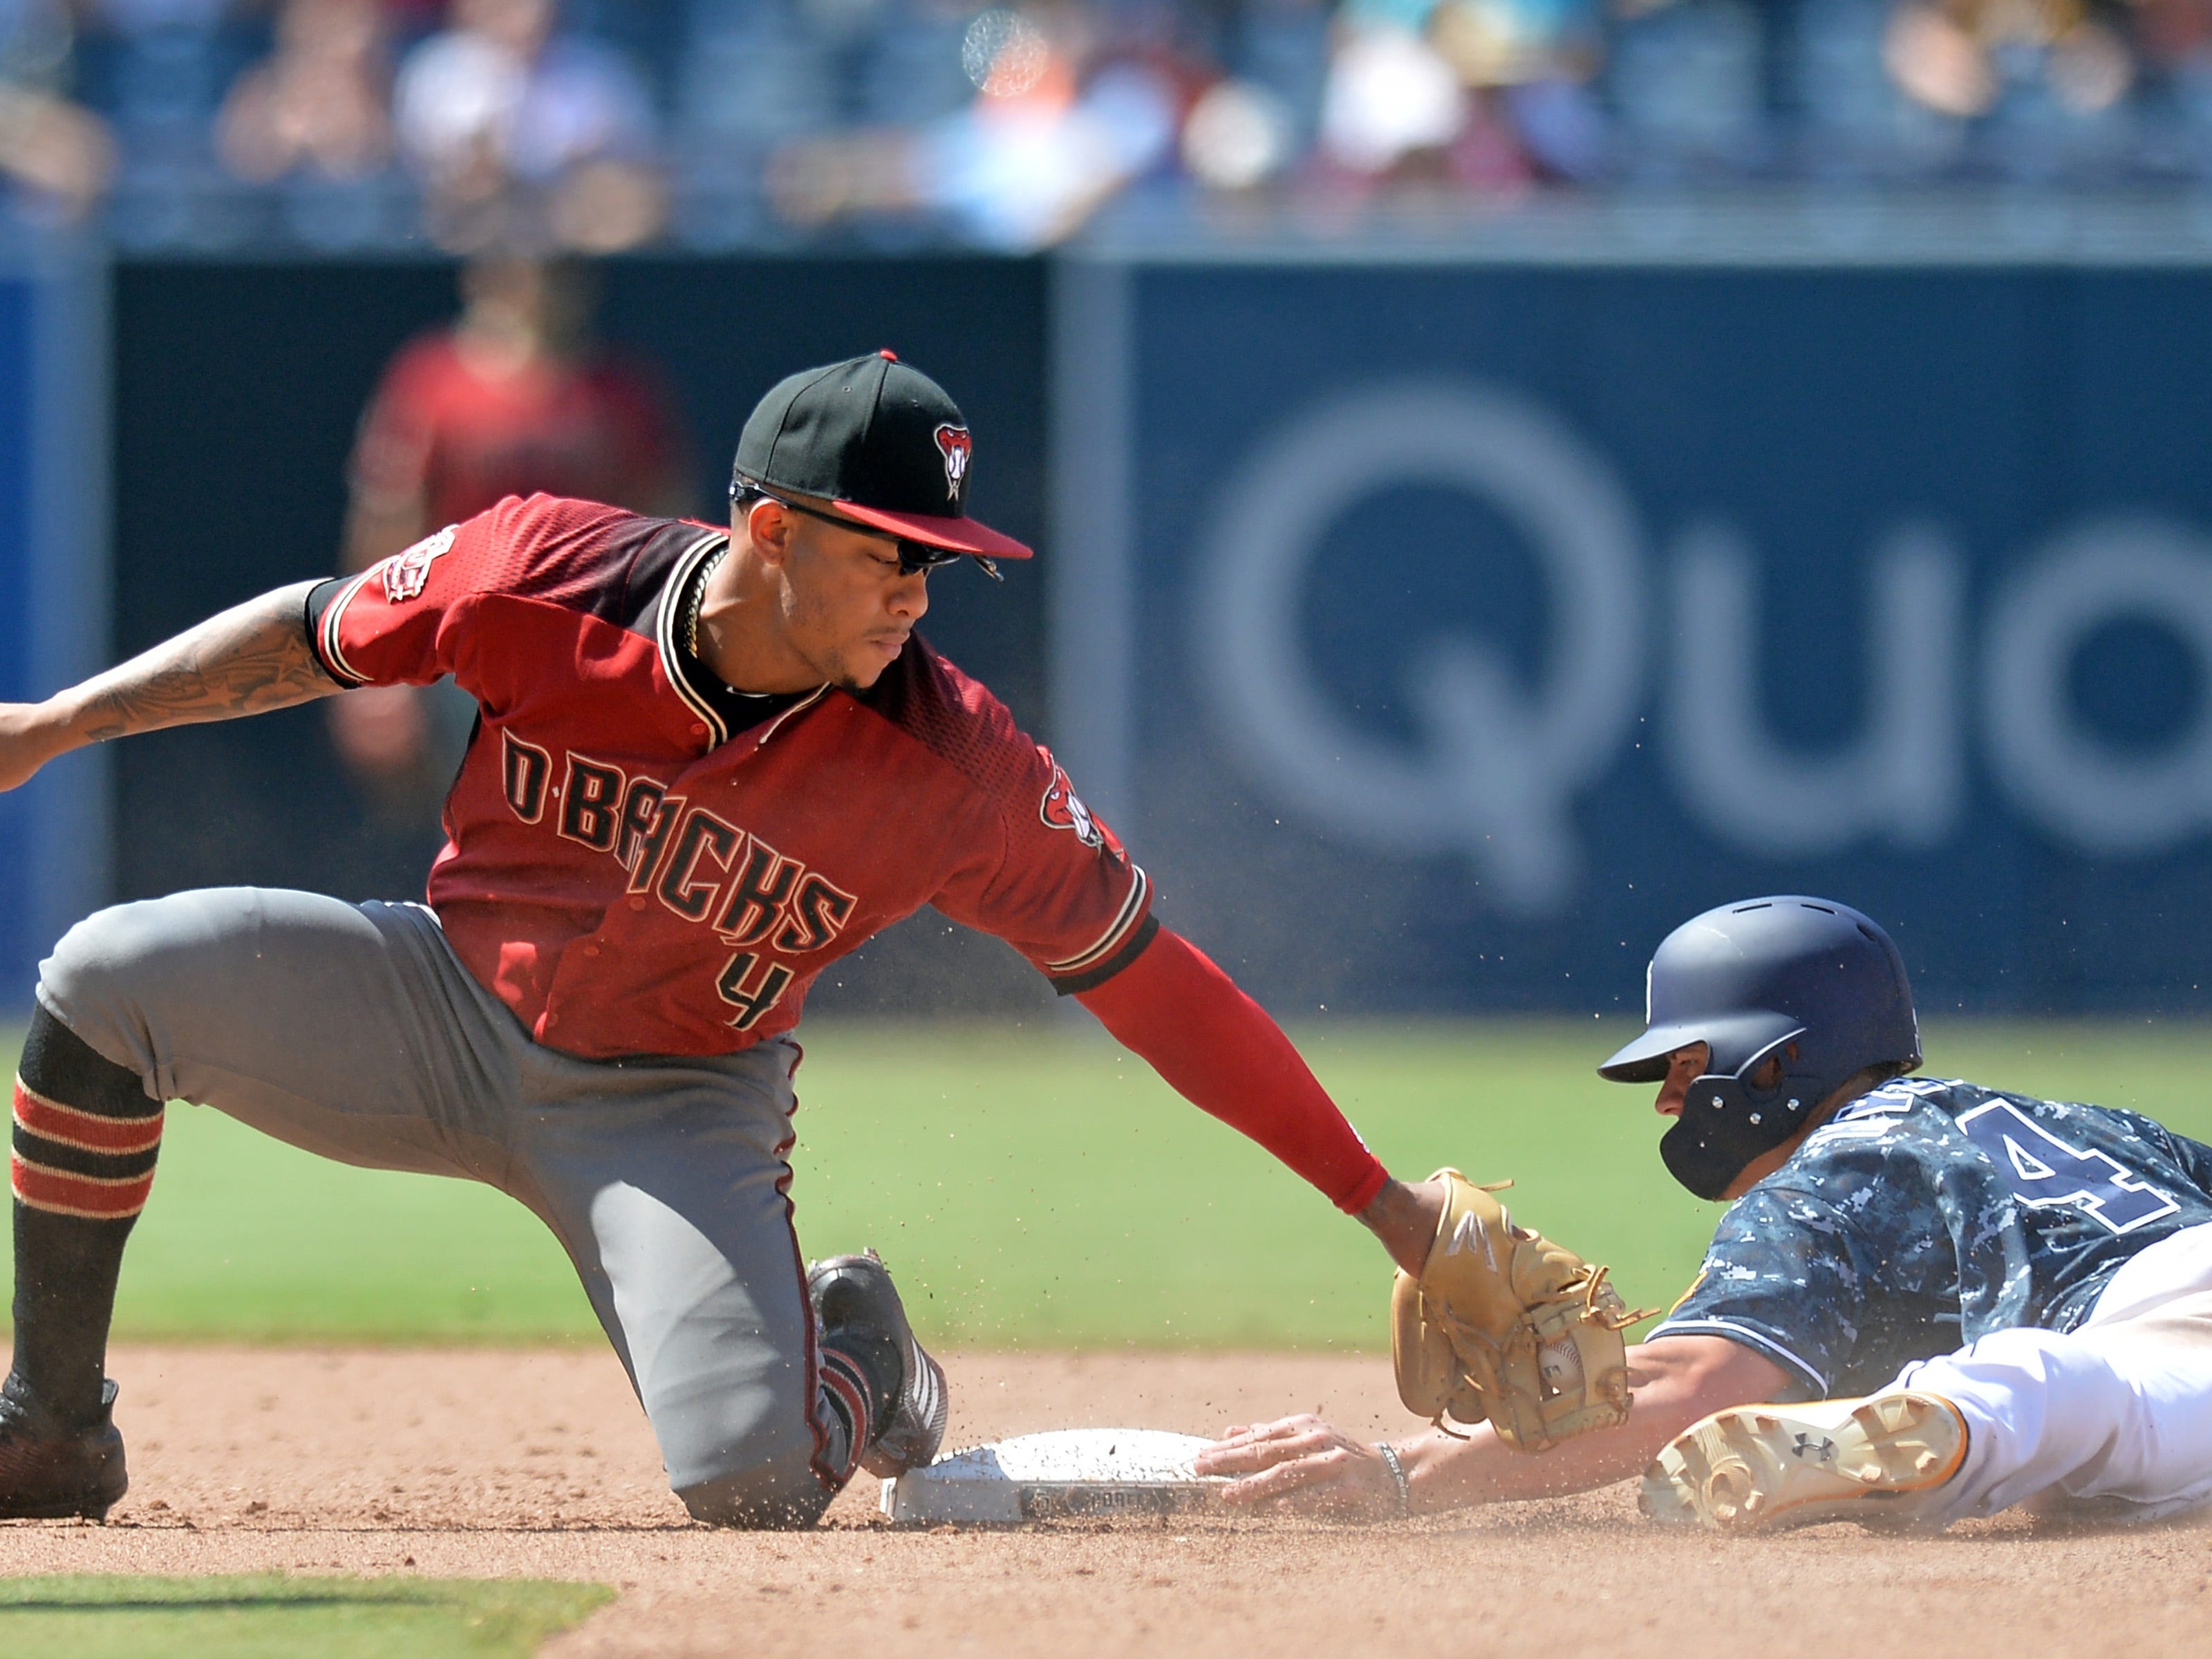 Aug 19, 2018; San Diego, CA, USA; Arizona Diamondbacks shortstop Ketel Marte (4) cannot get the tag on San Diego Padres third baseman Wil Myers (4) in time as Myers steals second in the sixth inning at Petco Park. Mandatory Credit: Jake Roth-USA TODAY Sports